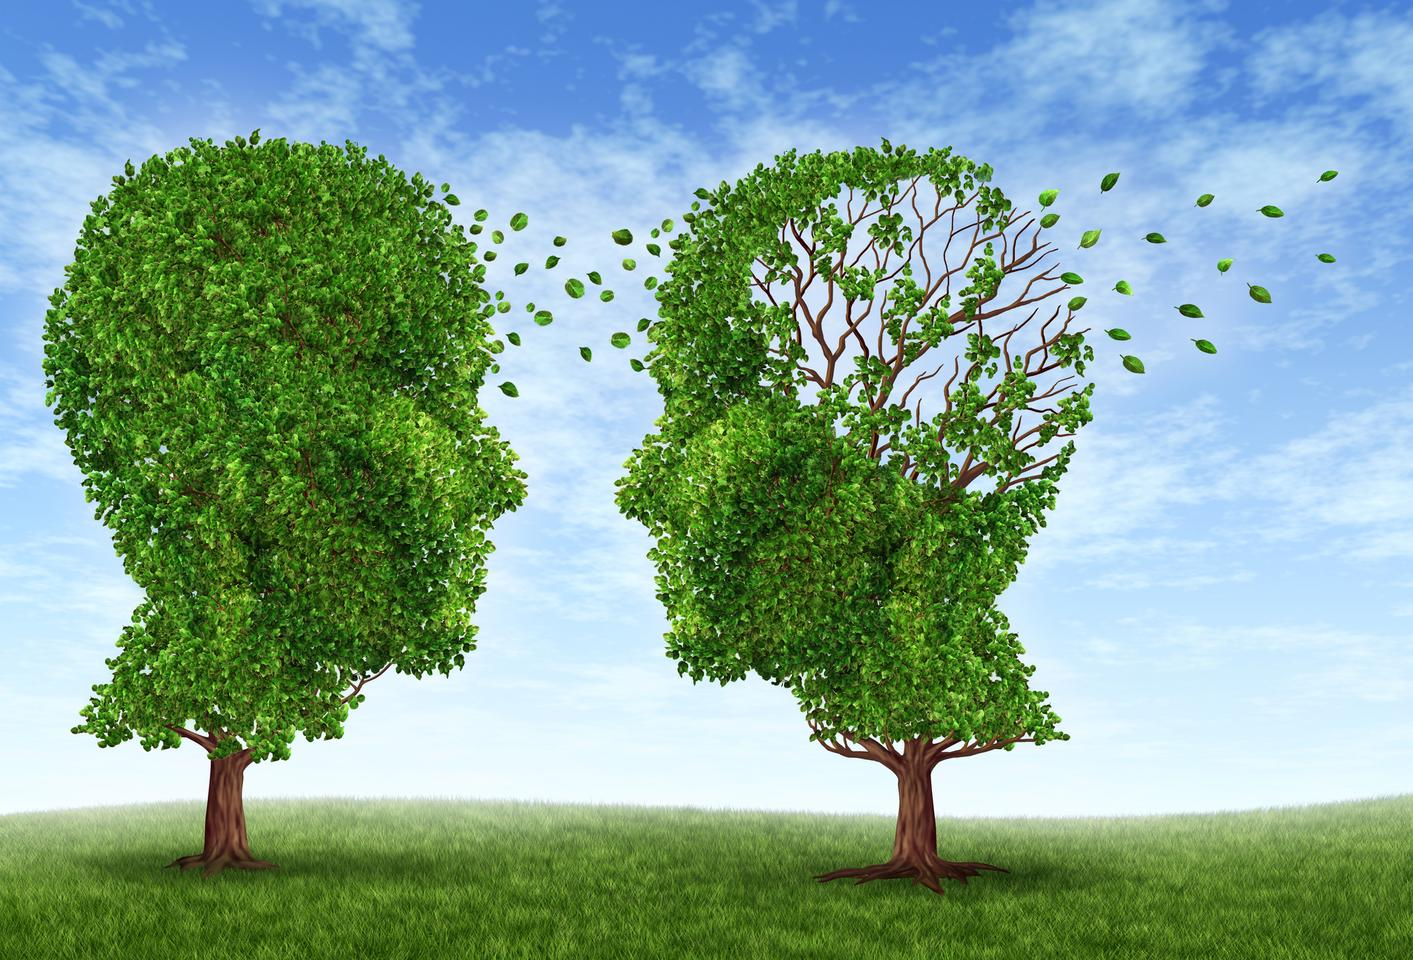 Ten risk factors, including head trauma, obesity in latelife, and diabetes, have been identified as the strongest risk factors for Alzheimer's in a new study